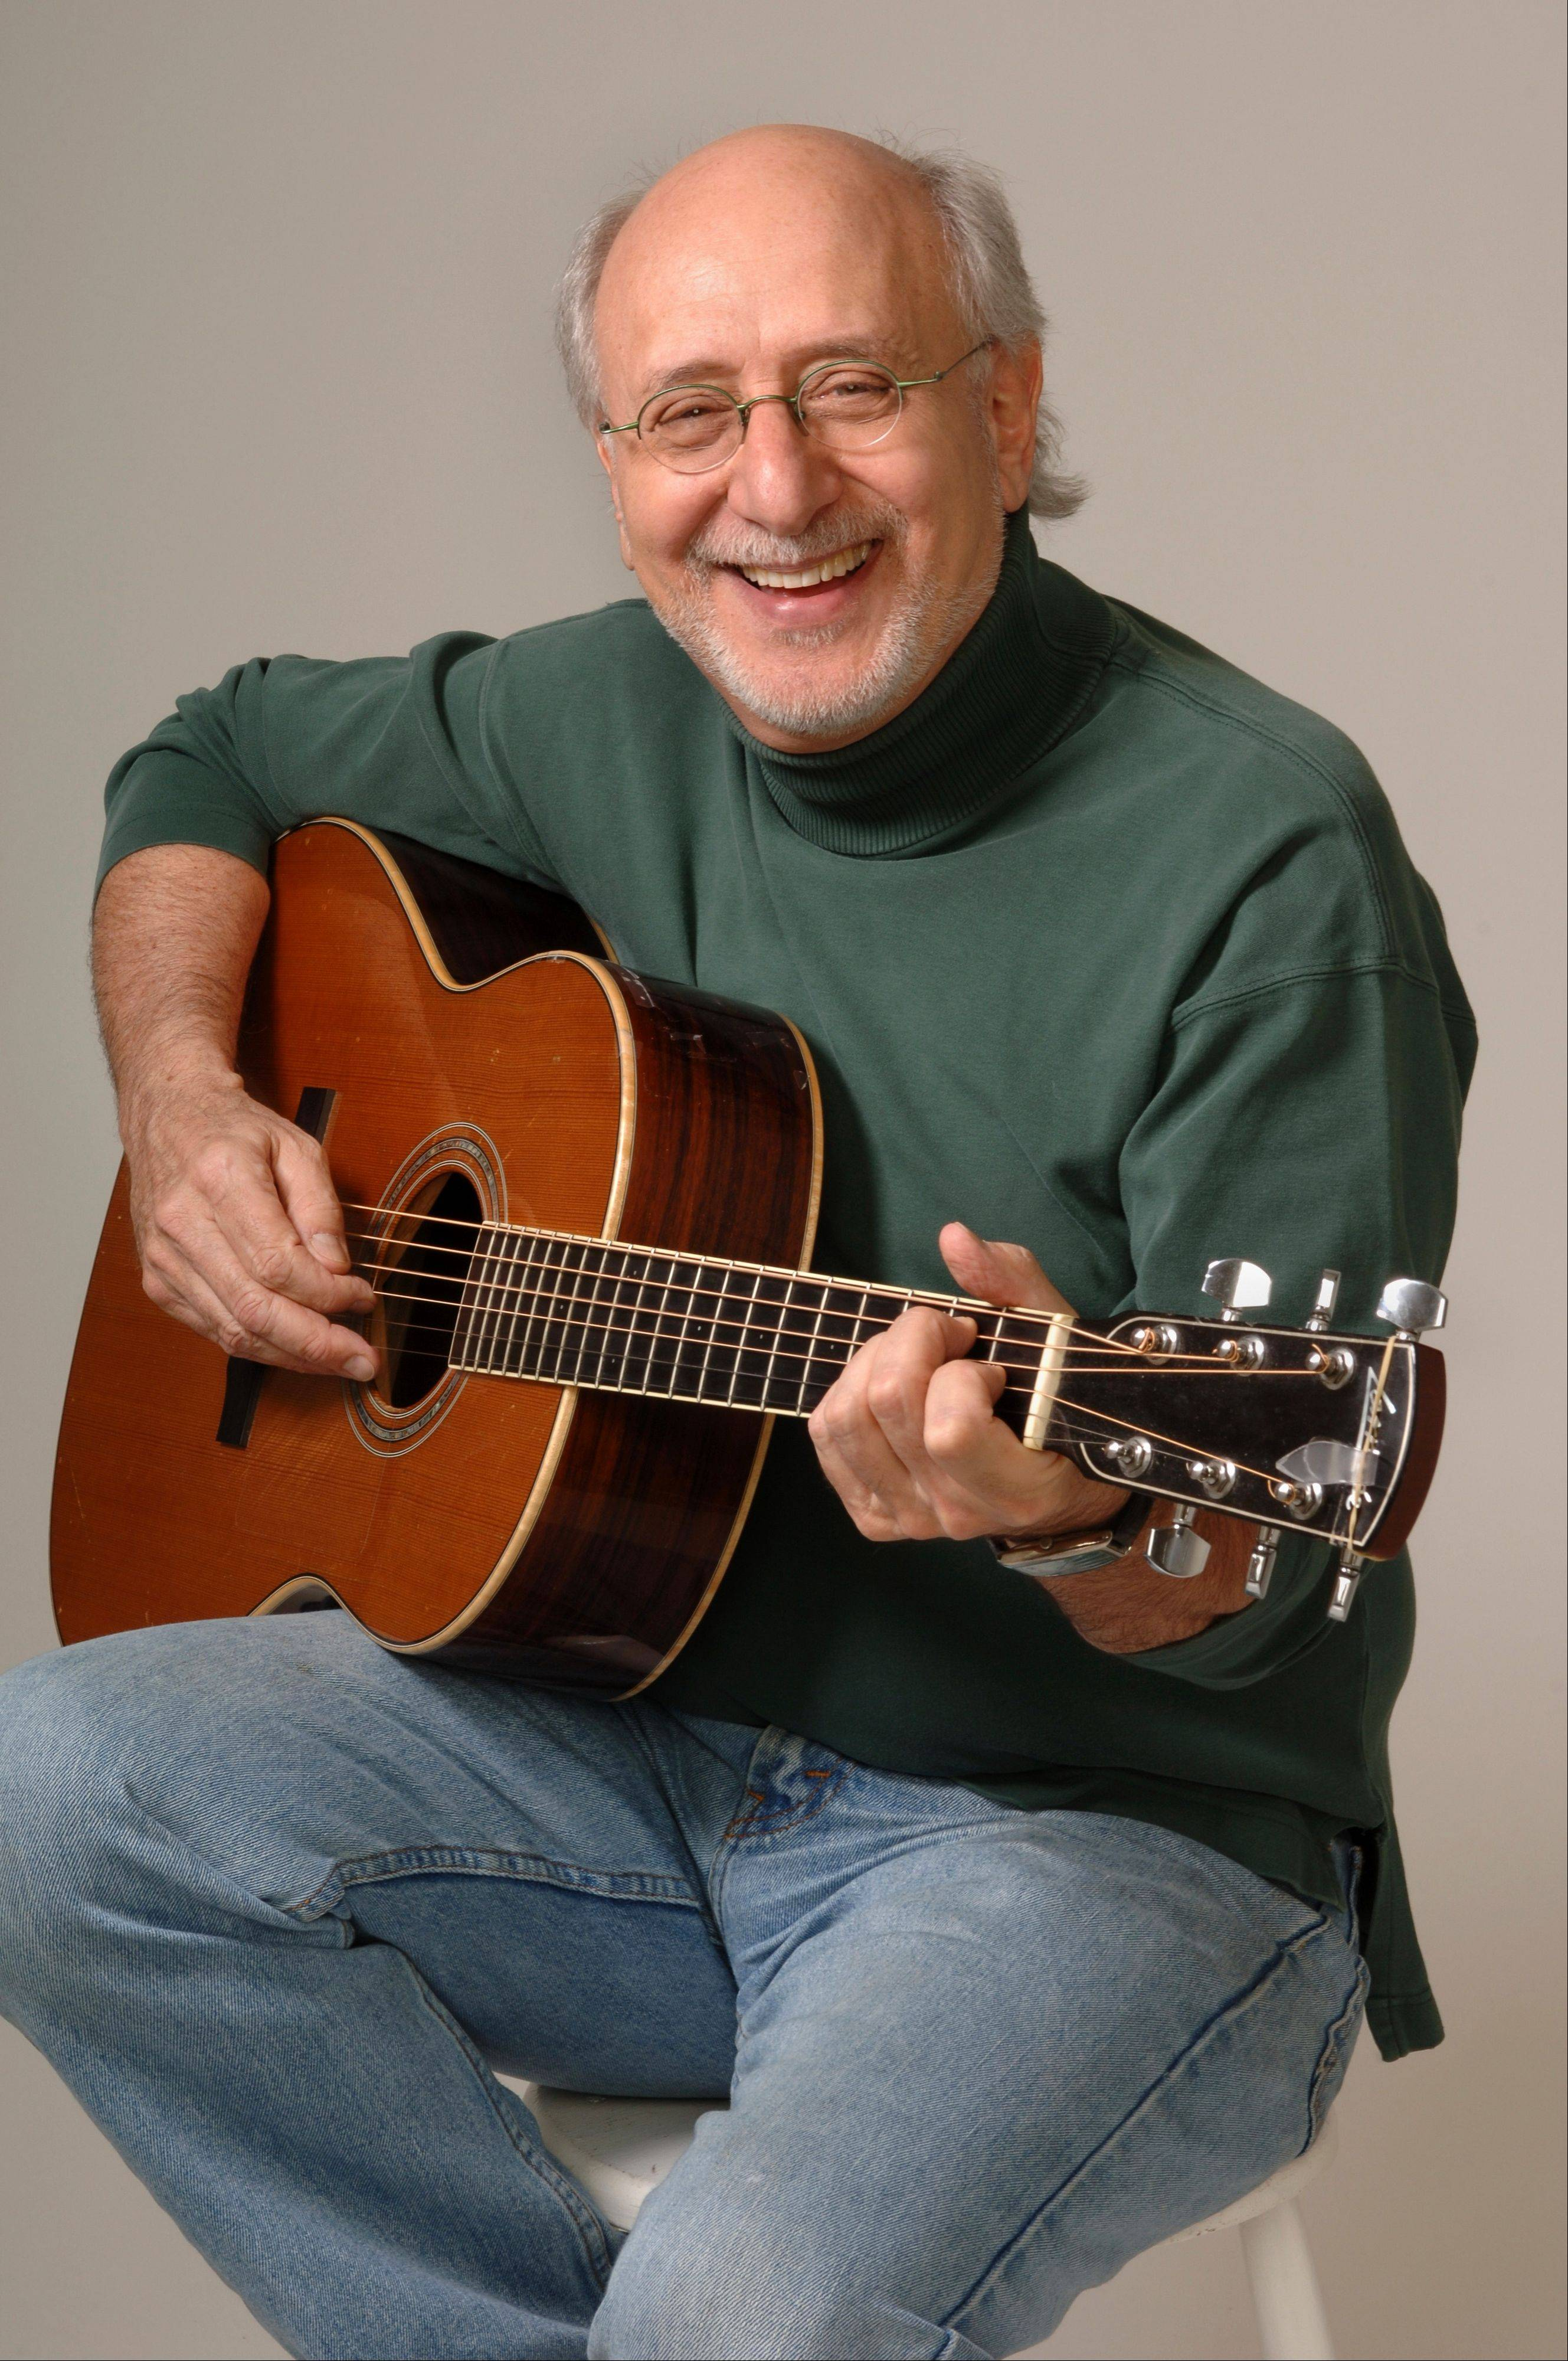 Peter Yarrow is set to perform at the Raue Center for the Arts in Crystal Lake.